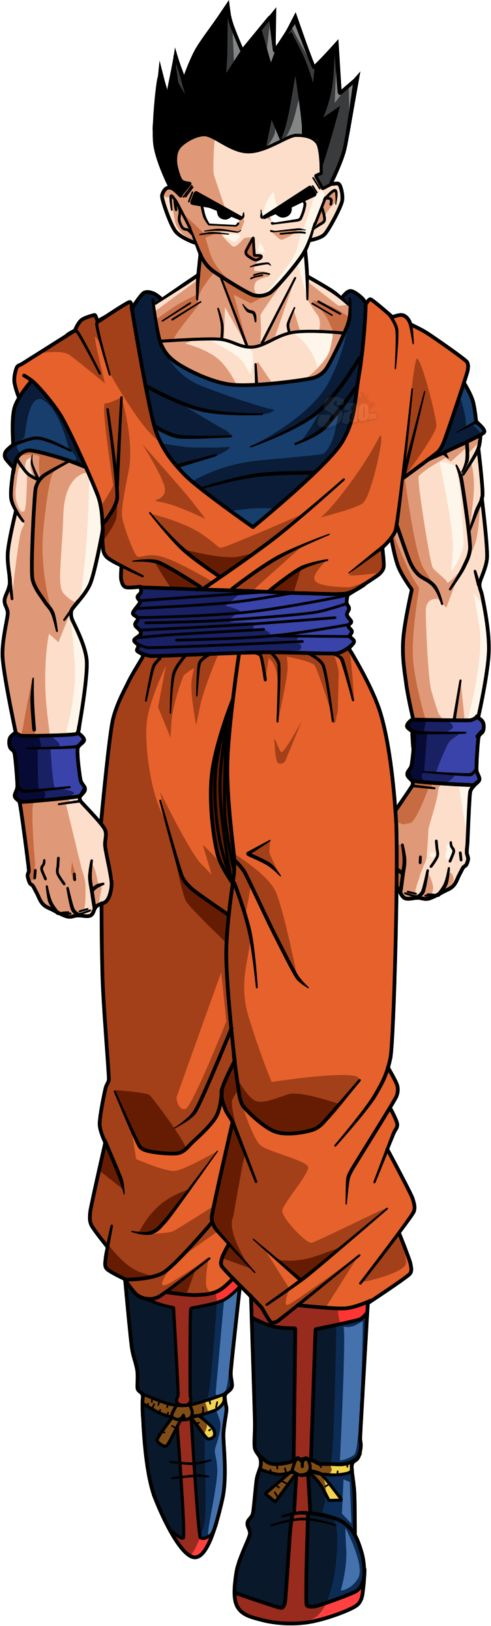 The Ultimate Warrior is back and stronger than ever!!  Ultimate gohan: Dragonball Super Universal Survival Arc